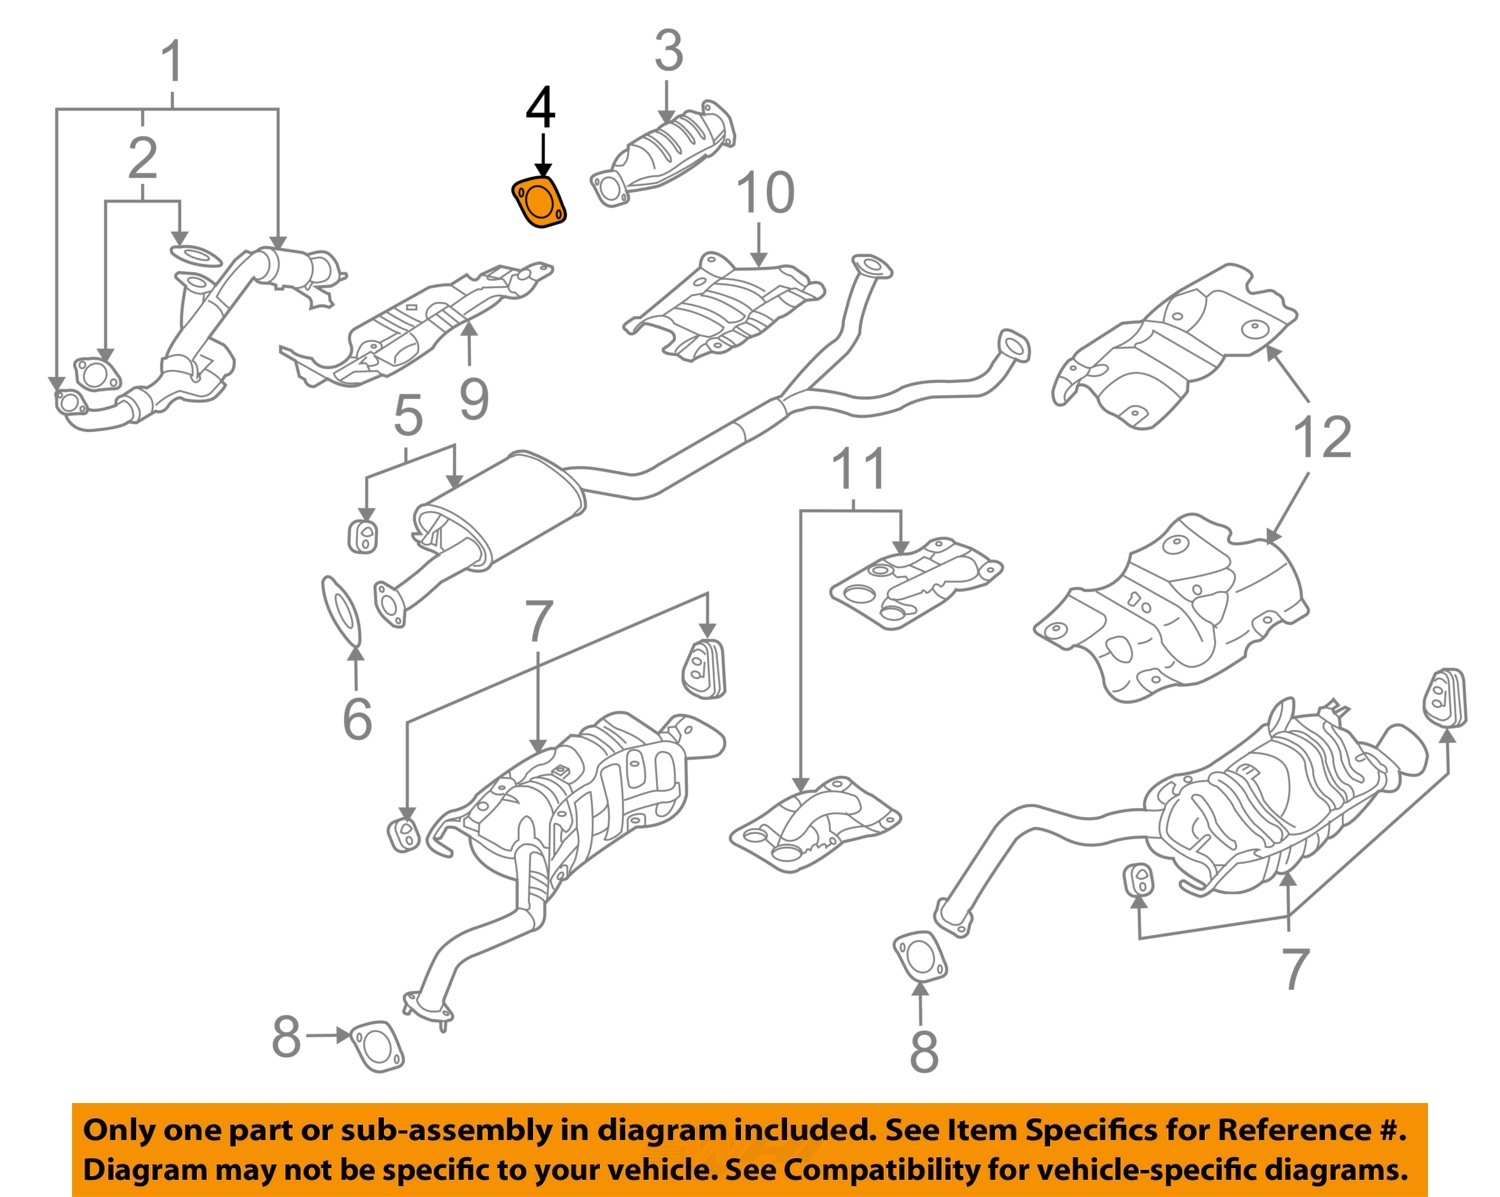 Genesis Coupe Exhaust Diagram Trusted Wiring Diagrams 2011 Hyundai Engine Stock Wire Data Schema U2022 2013 Oem